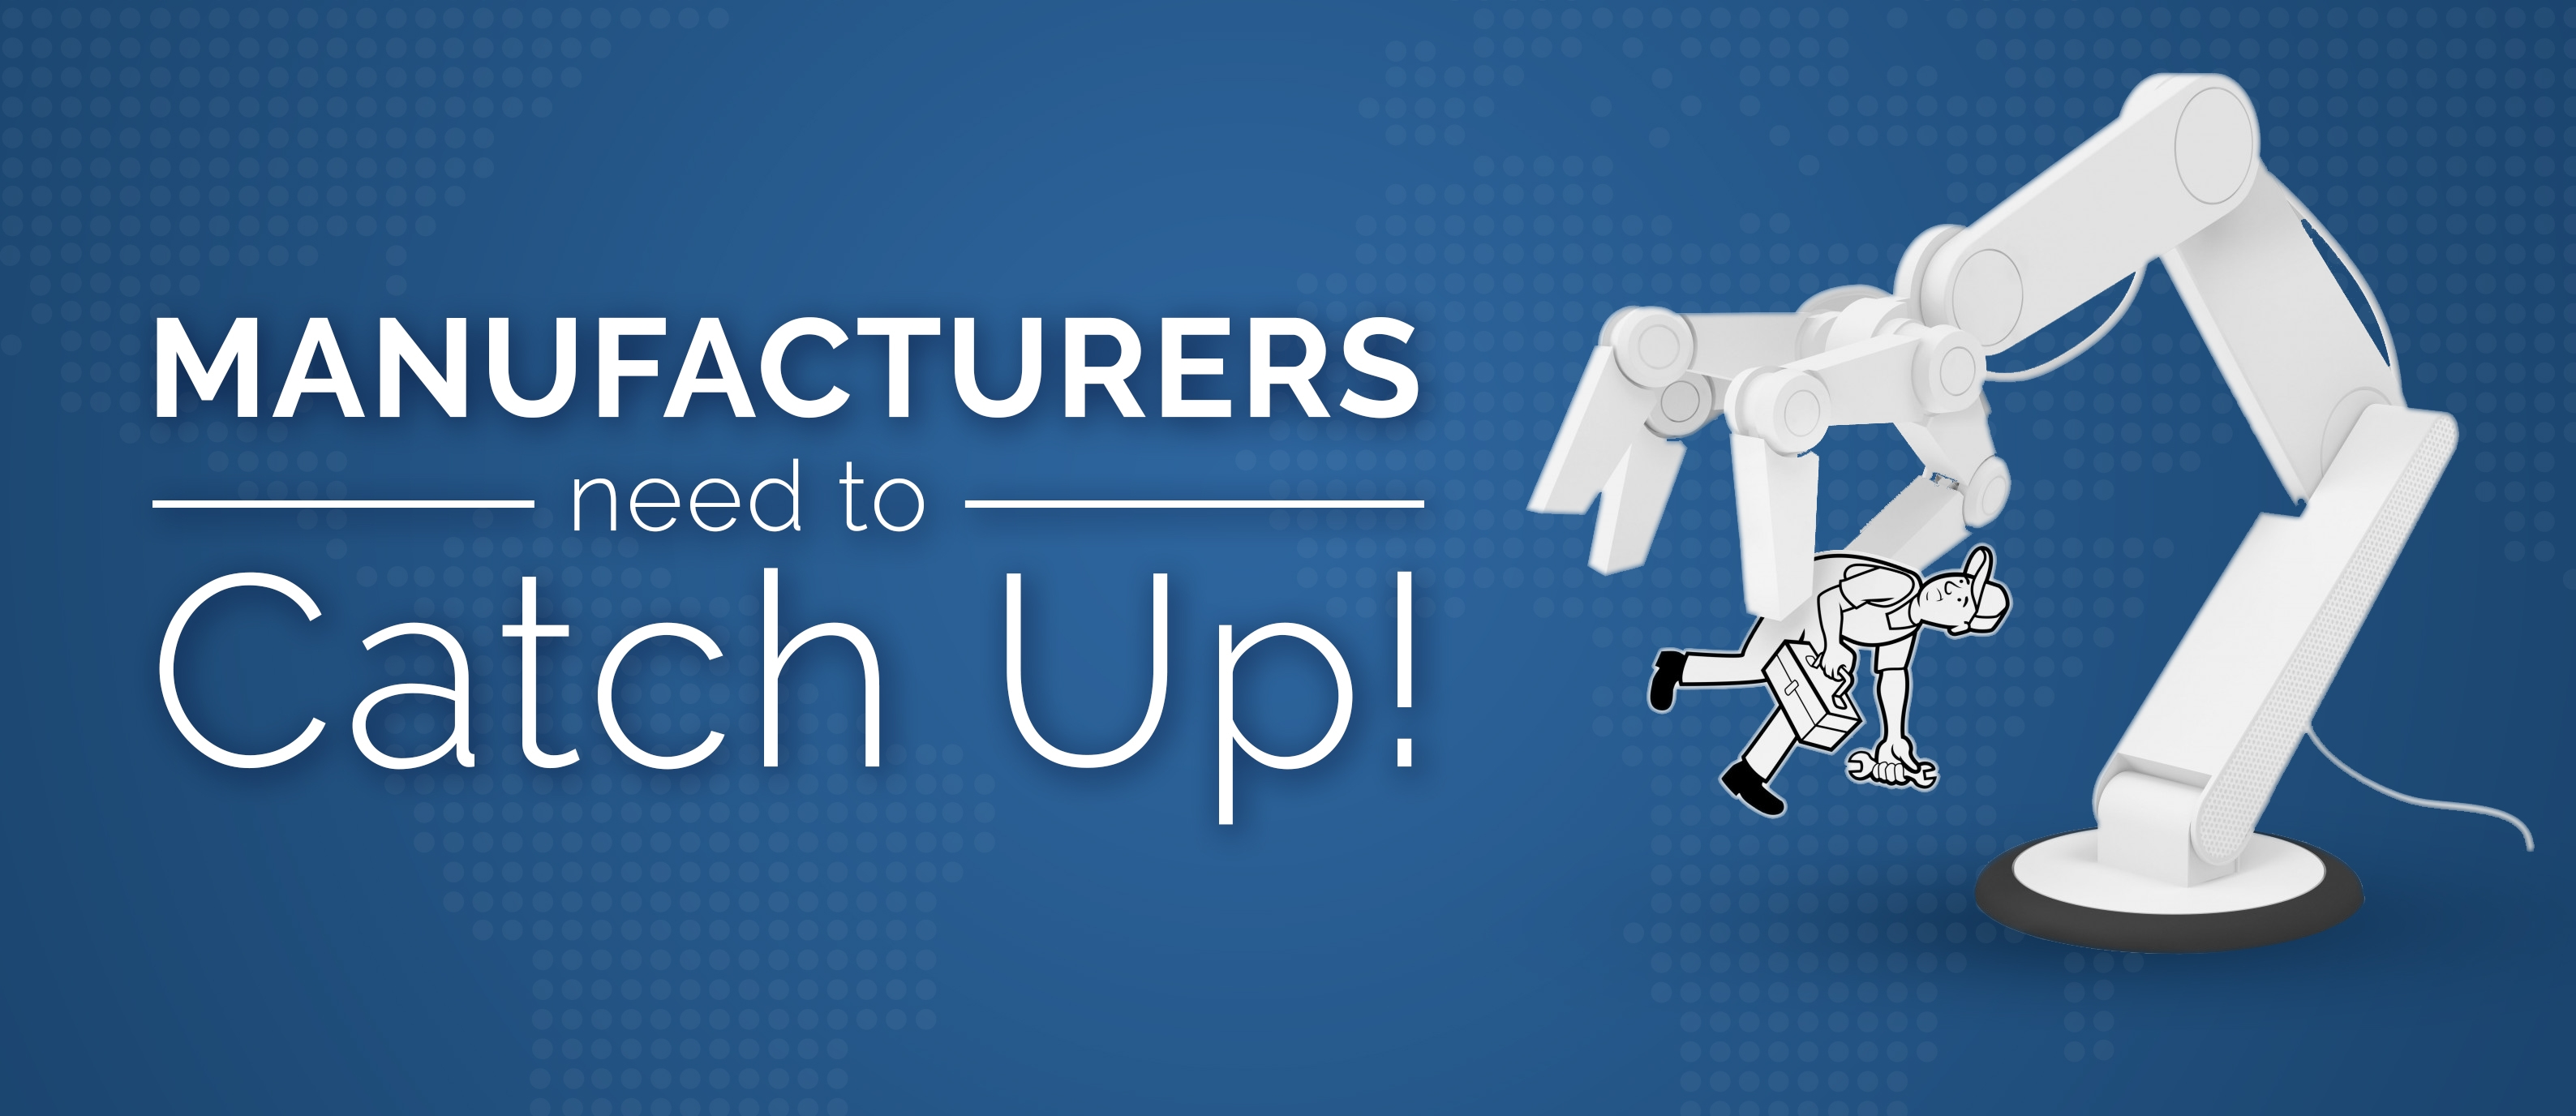 Manufacturers-Need-to-Catch-Up